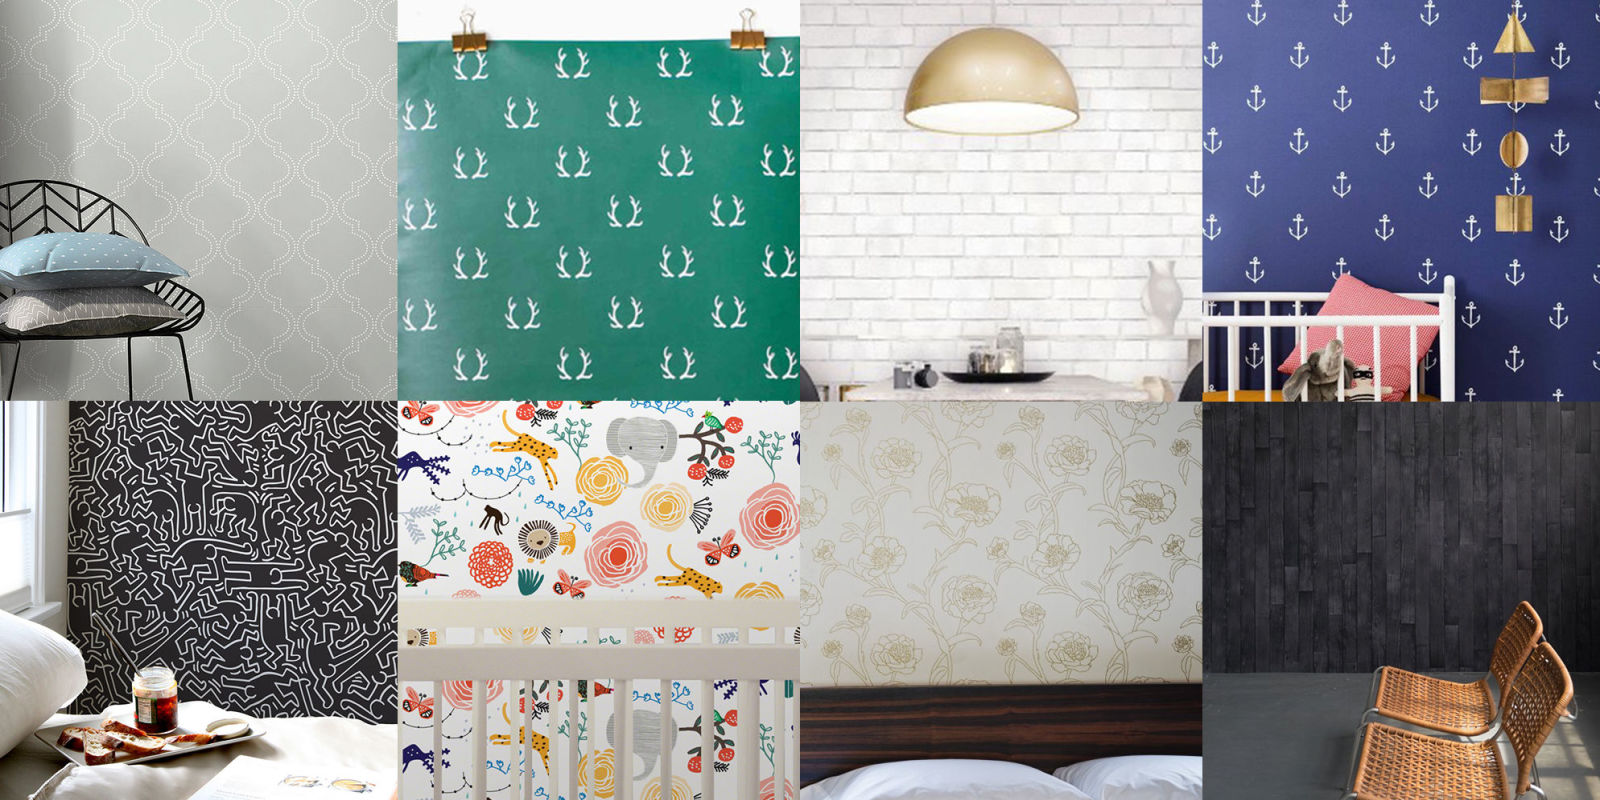 Temporary wallpaper best removable wallpaper best Temporary grasscloth wallpaper